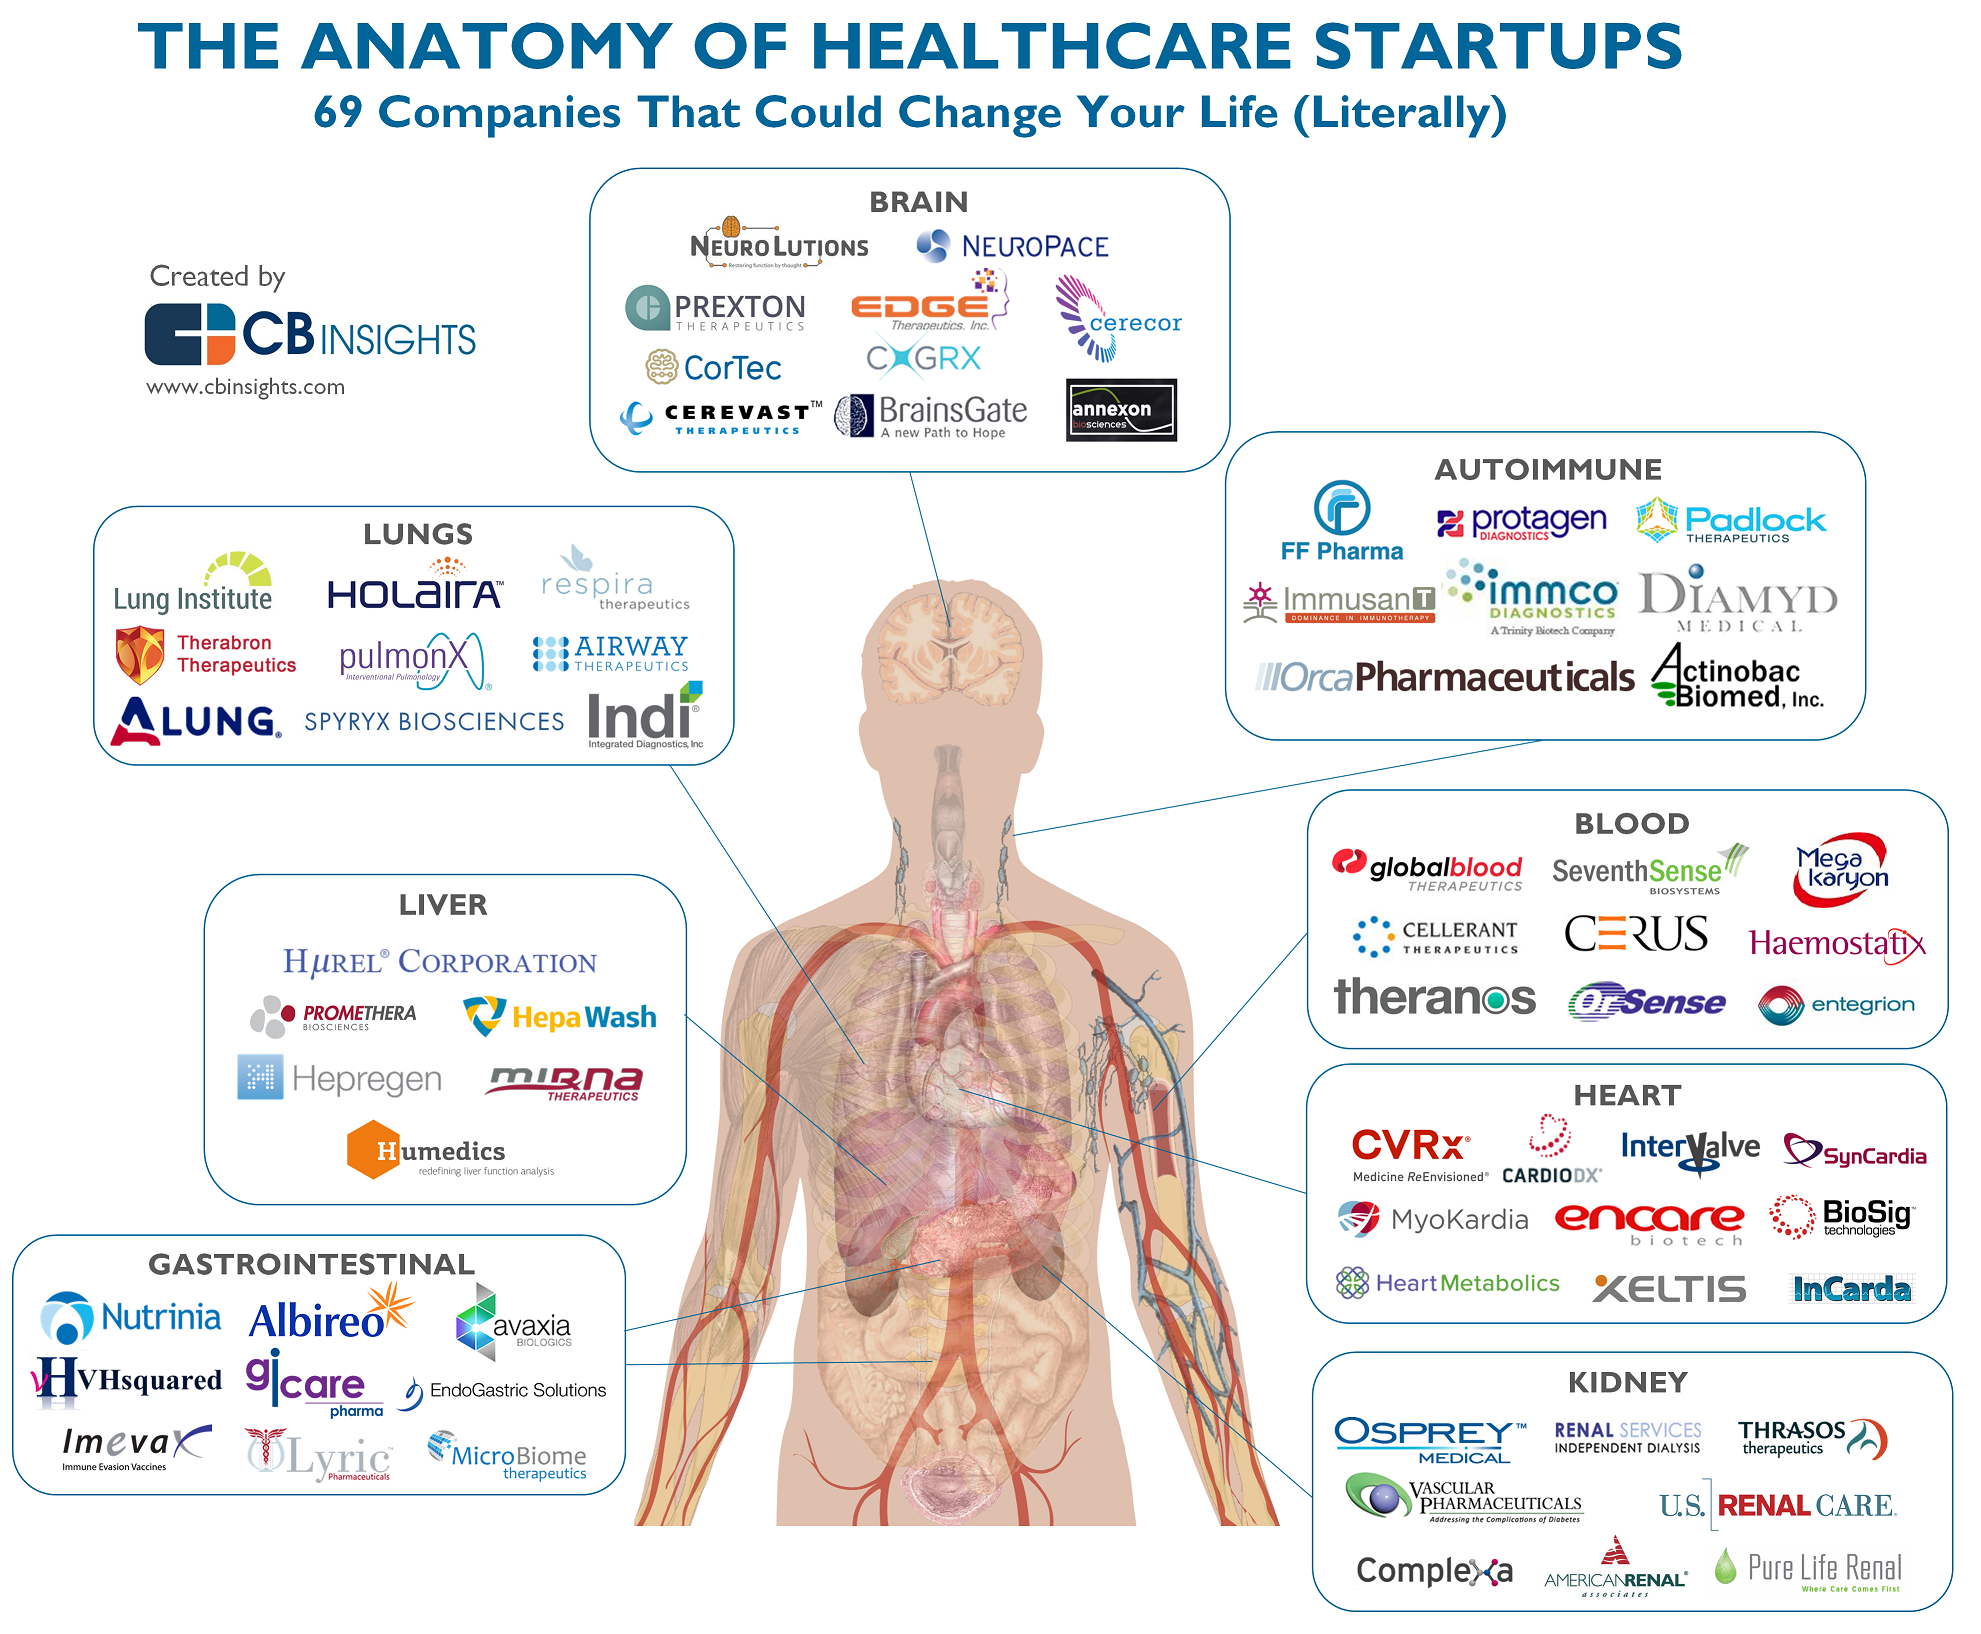 The Anatomy Of Healthcare Startups 69 Companies In Patient Treatment